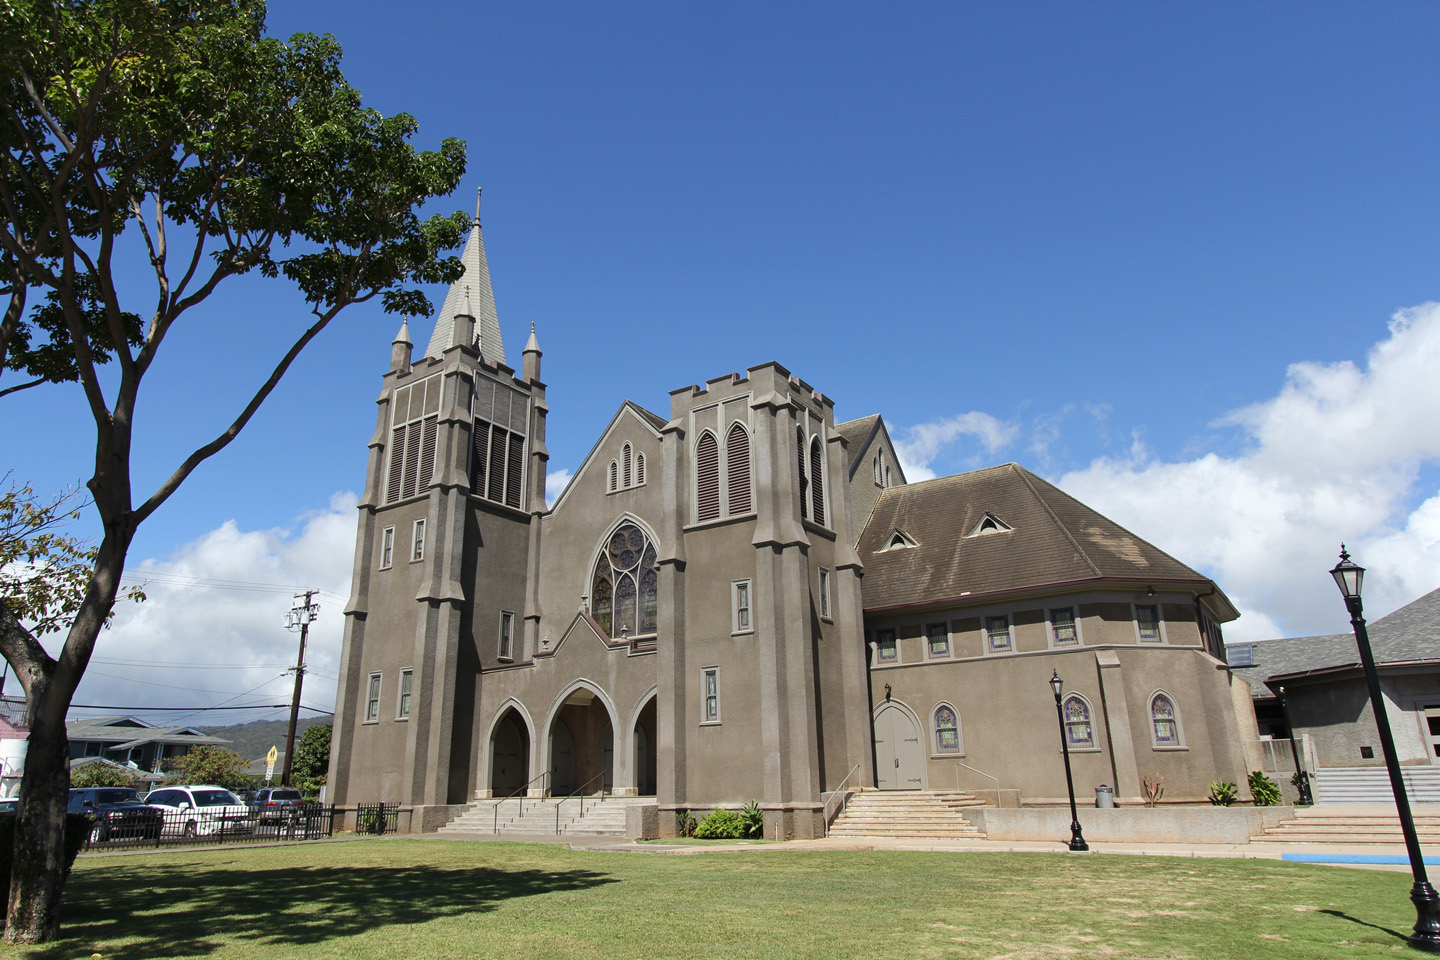 KAUMAKAPILI CHURCH